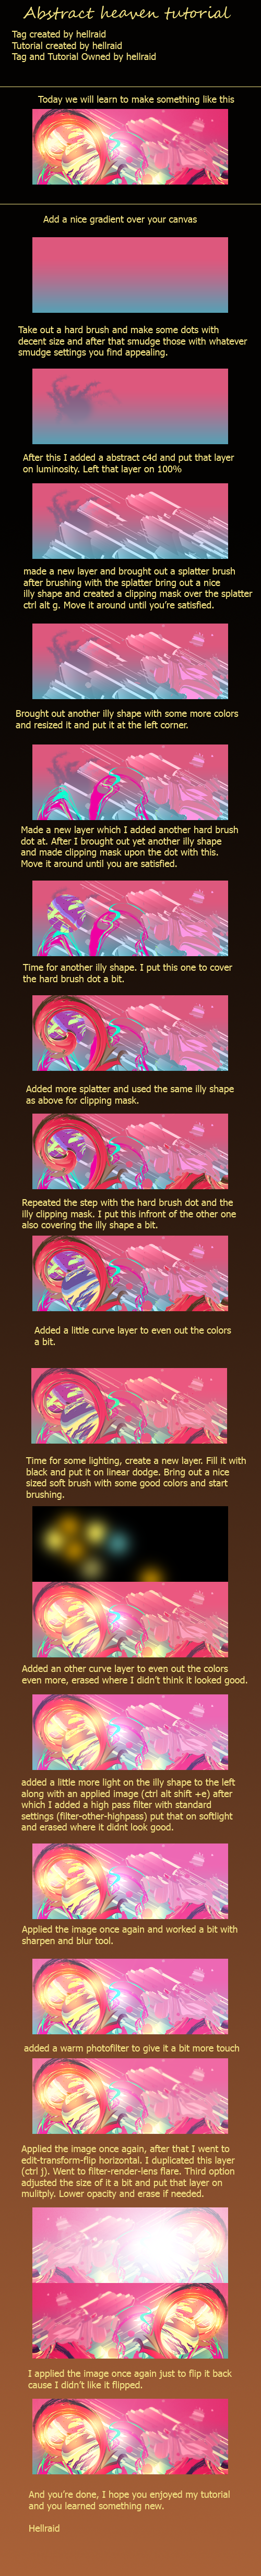 abstract_heaven_tutorial_by_hellraidgr-d